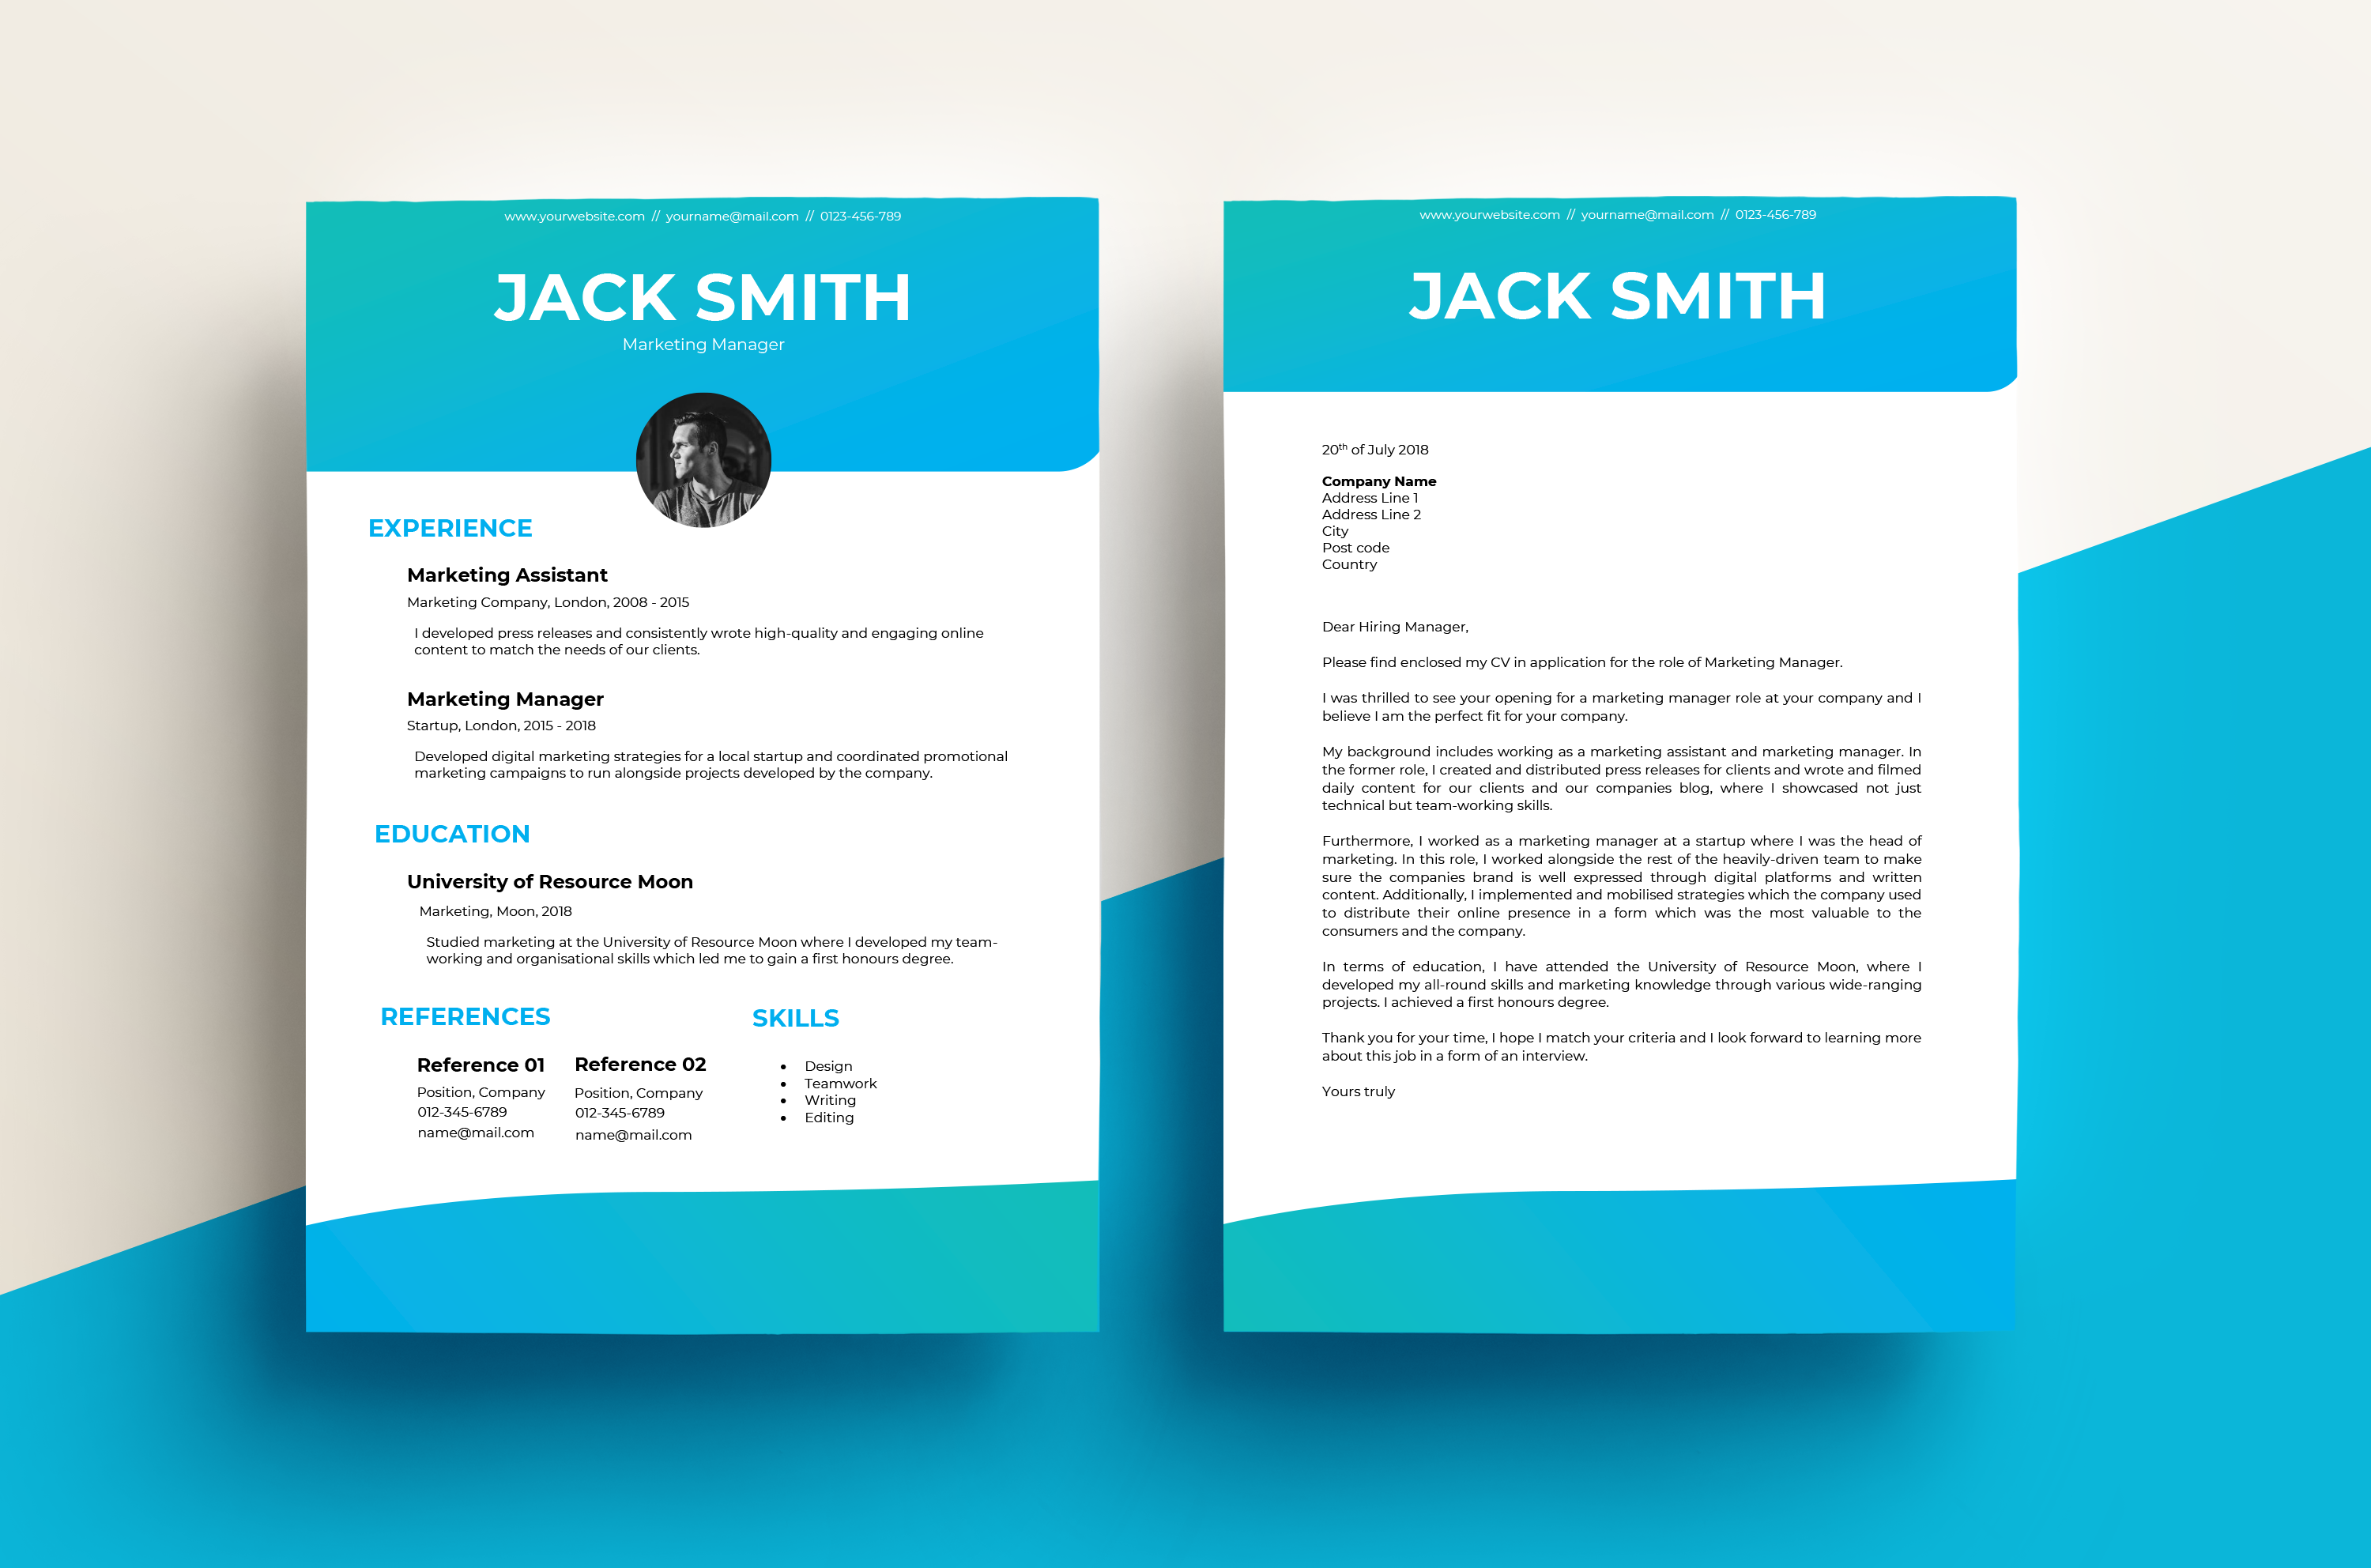 CV & Cover Letter – Gradient Light Blue Template | Resource Moon